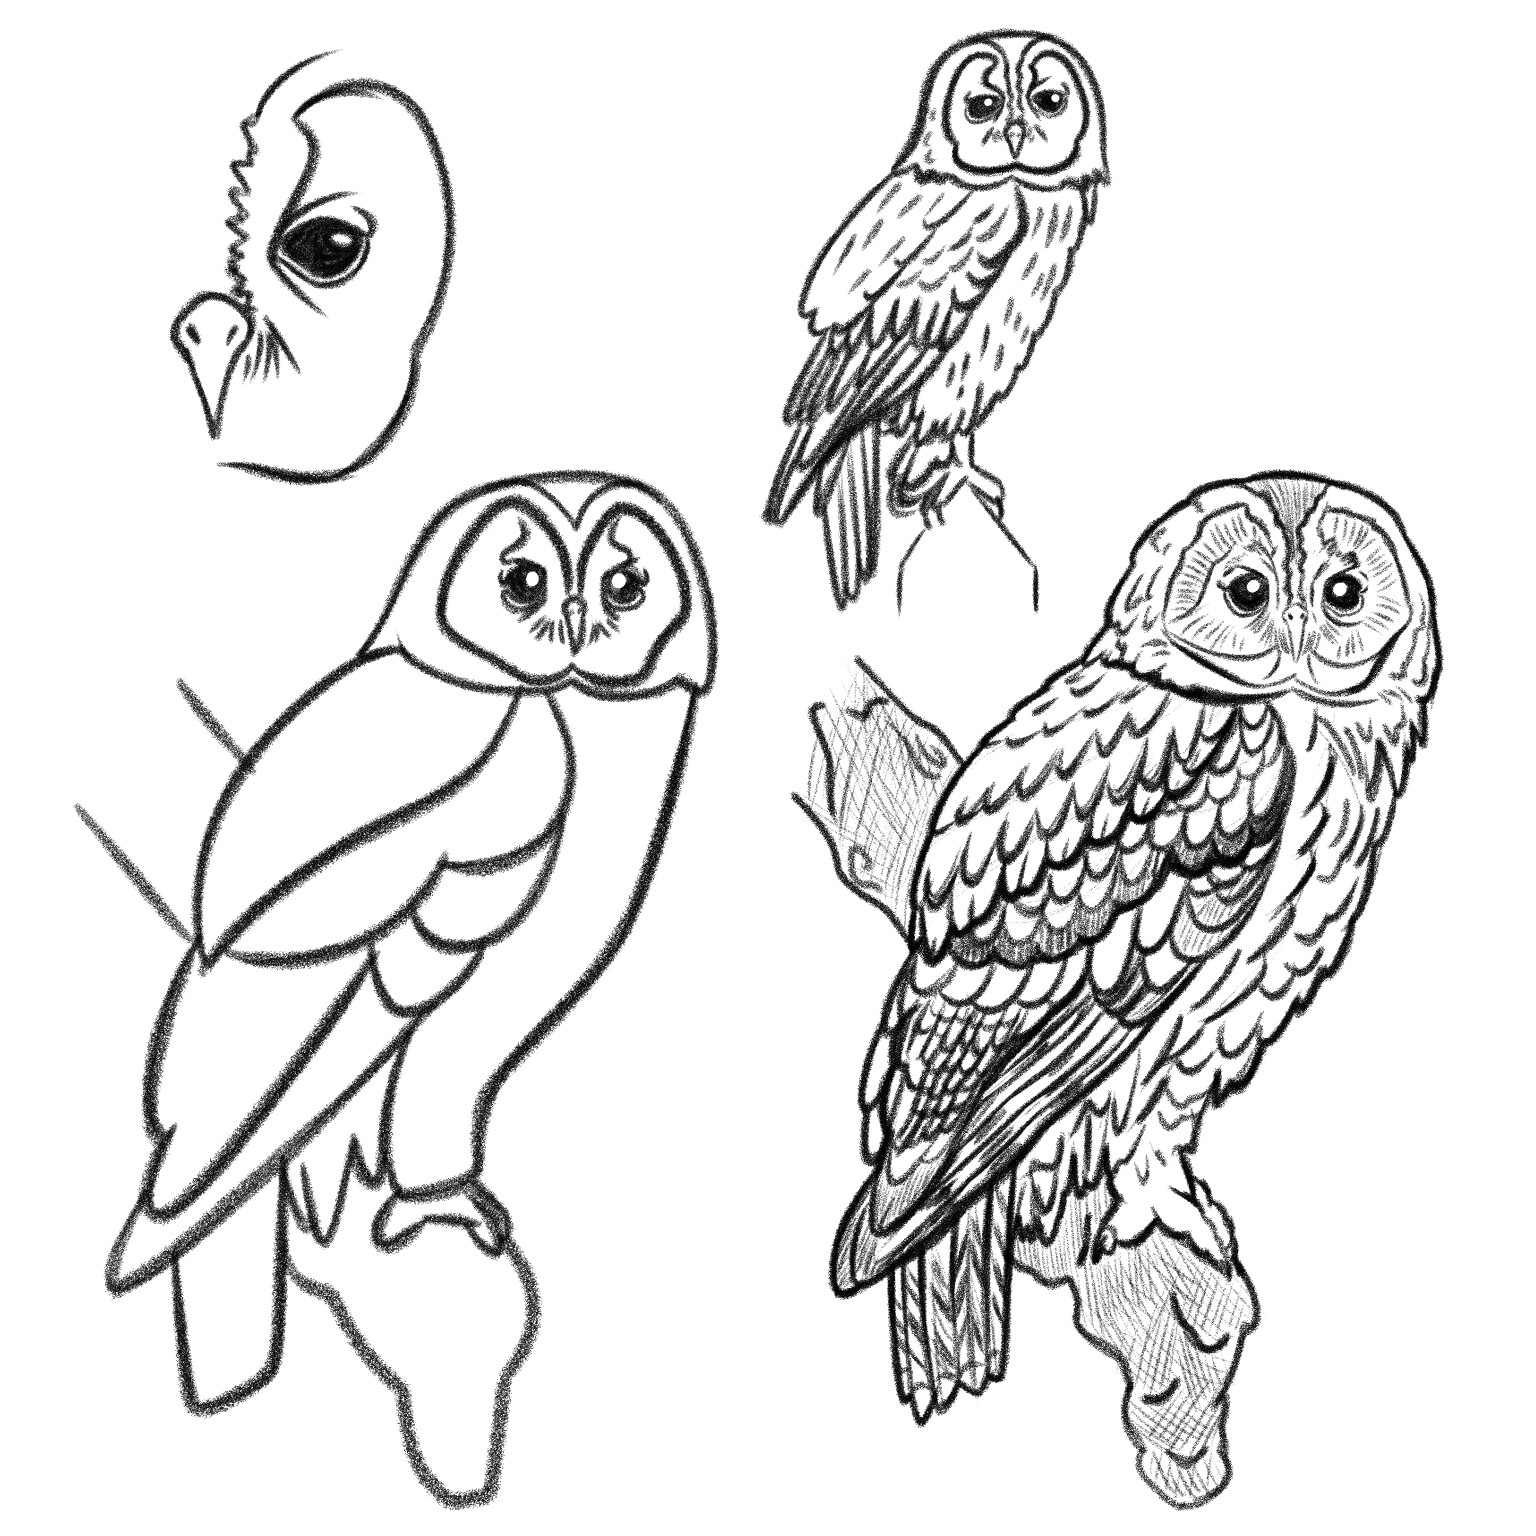 The progression of Tawny Owl studies that served as a warm up to the final piece.